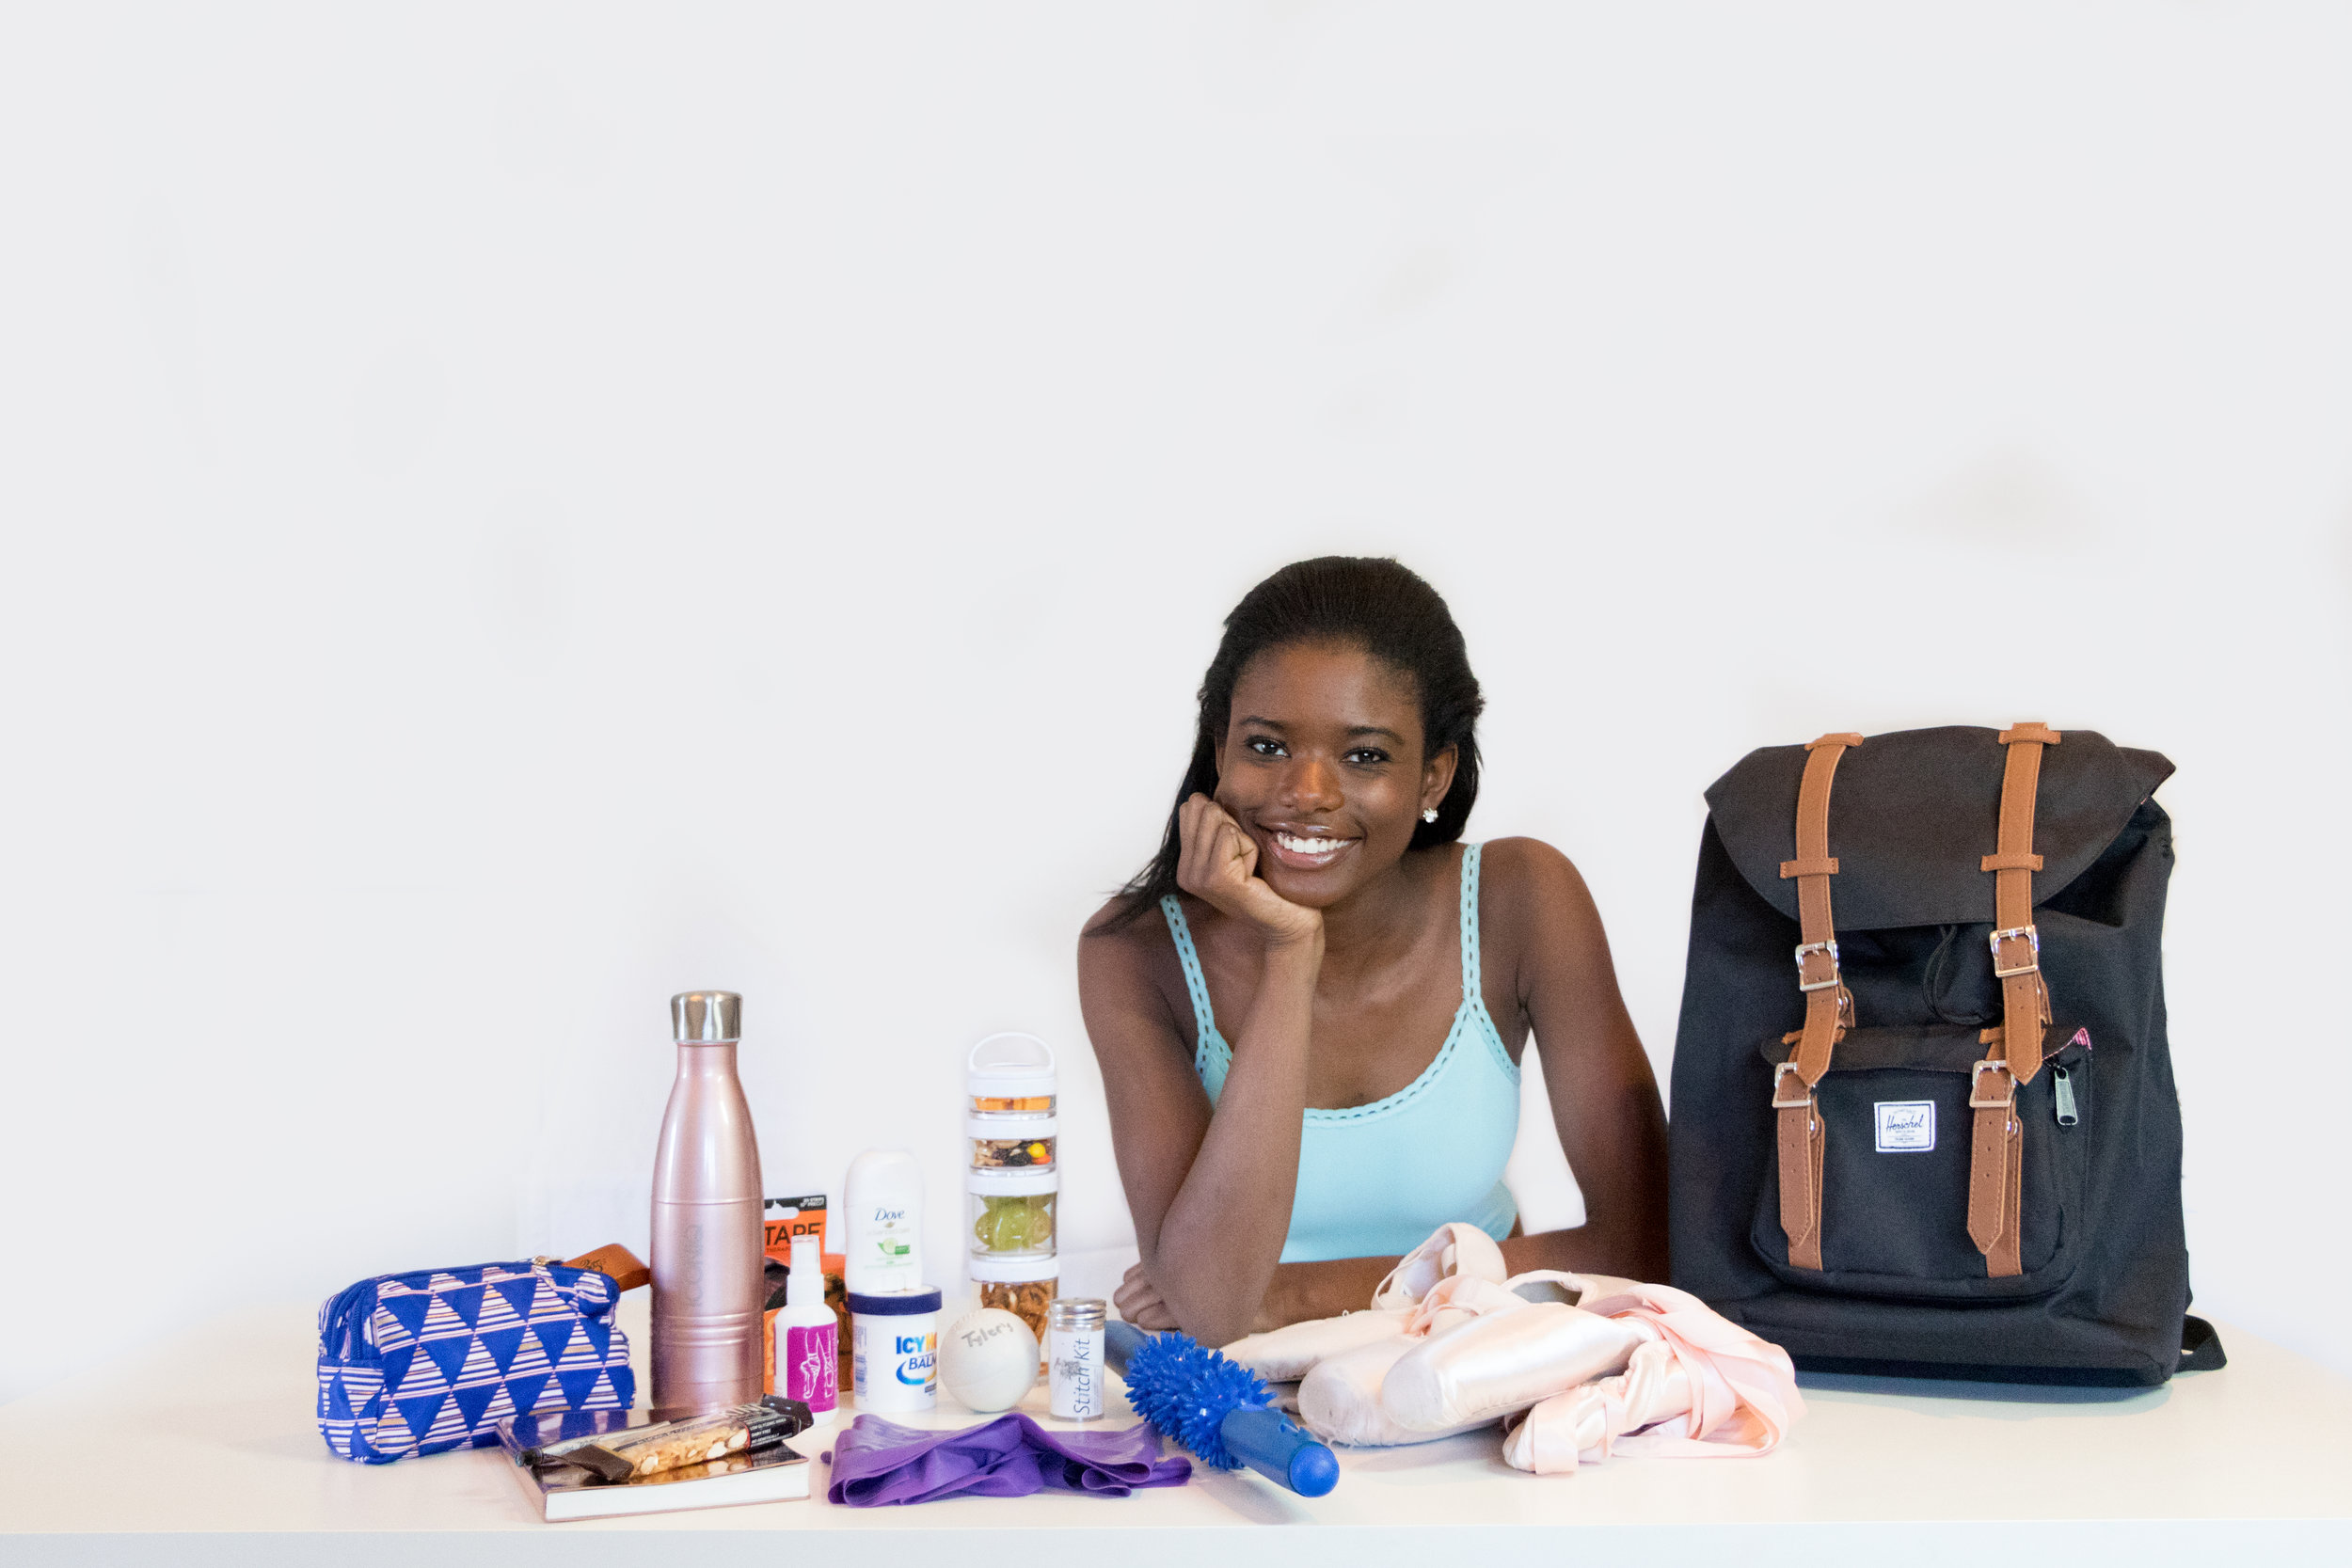 Inside Her Bag... - Tyler is a Professional Division dancer at Alvin Ailey in New York City. Tyler's days are varied and may include pointe class, Graham Technique, yoga class, costume fittings, master classes and performances. Here's a look at the everyday essentials that keep Tyler organized.